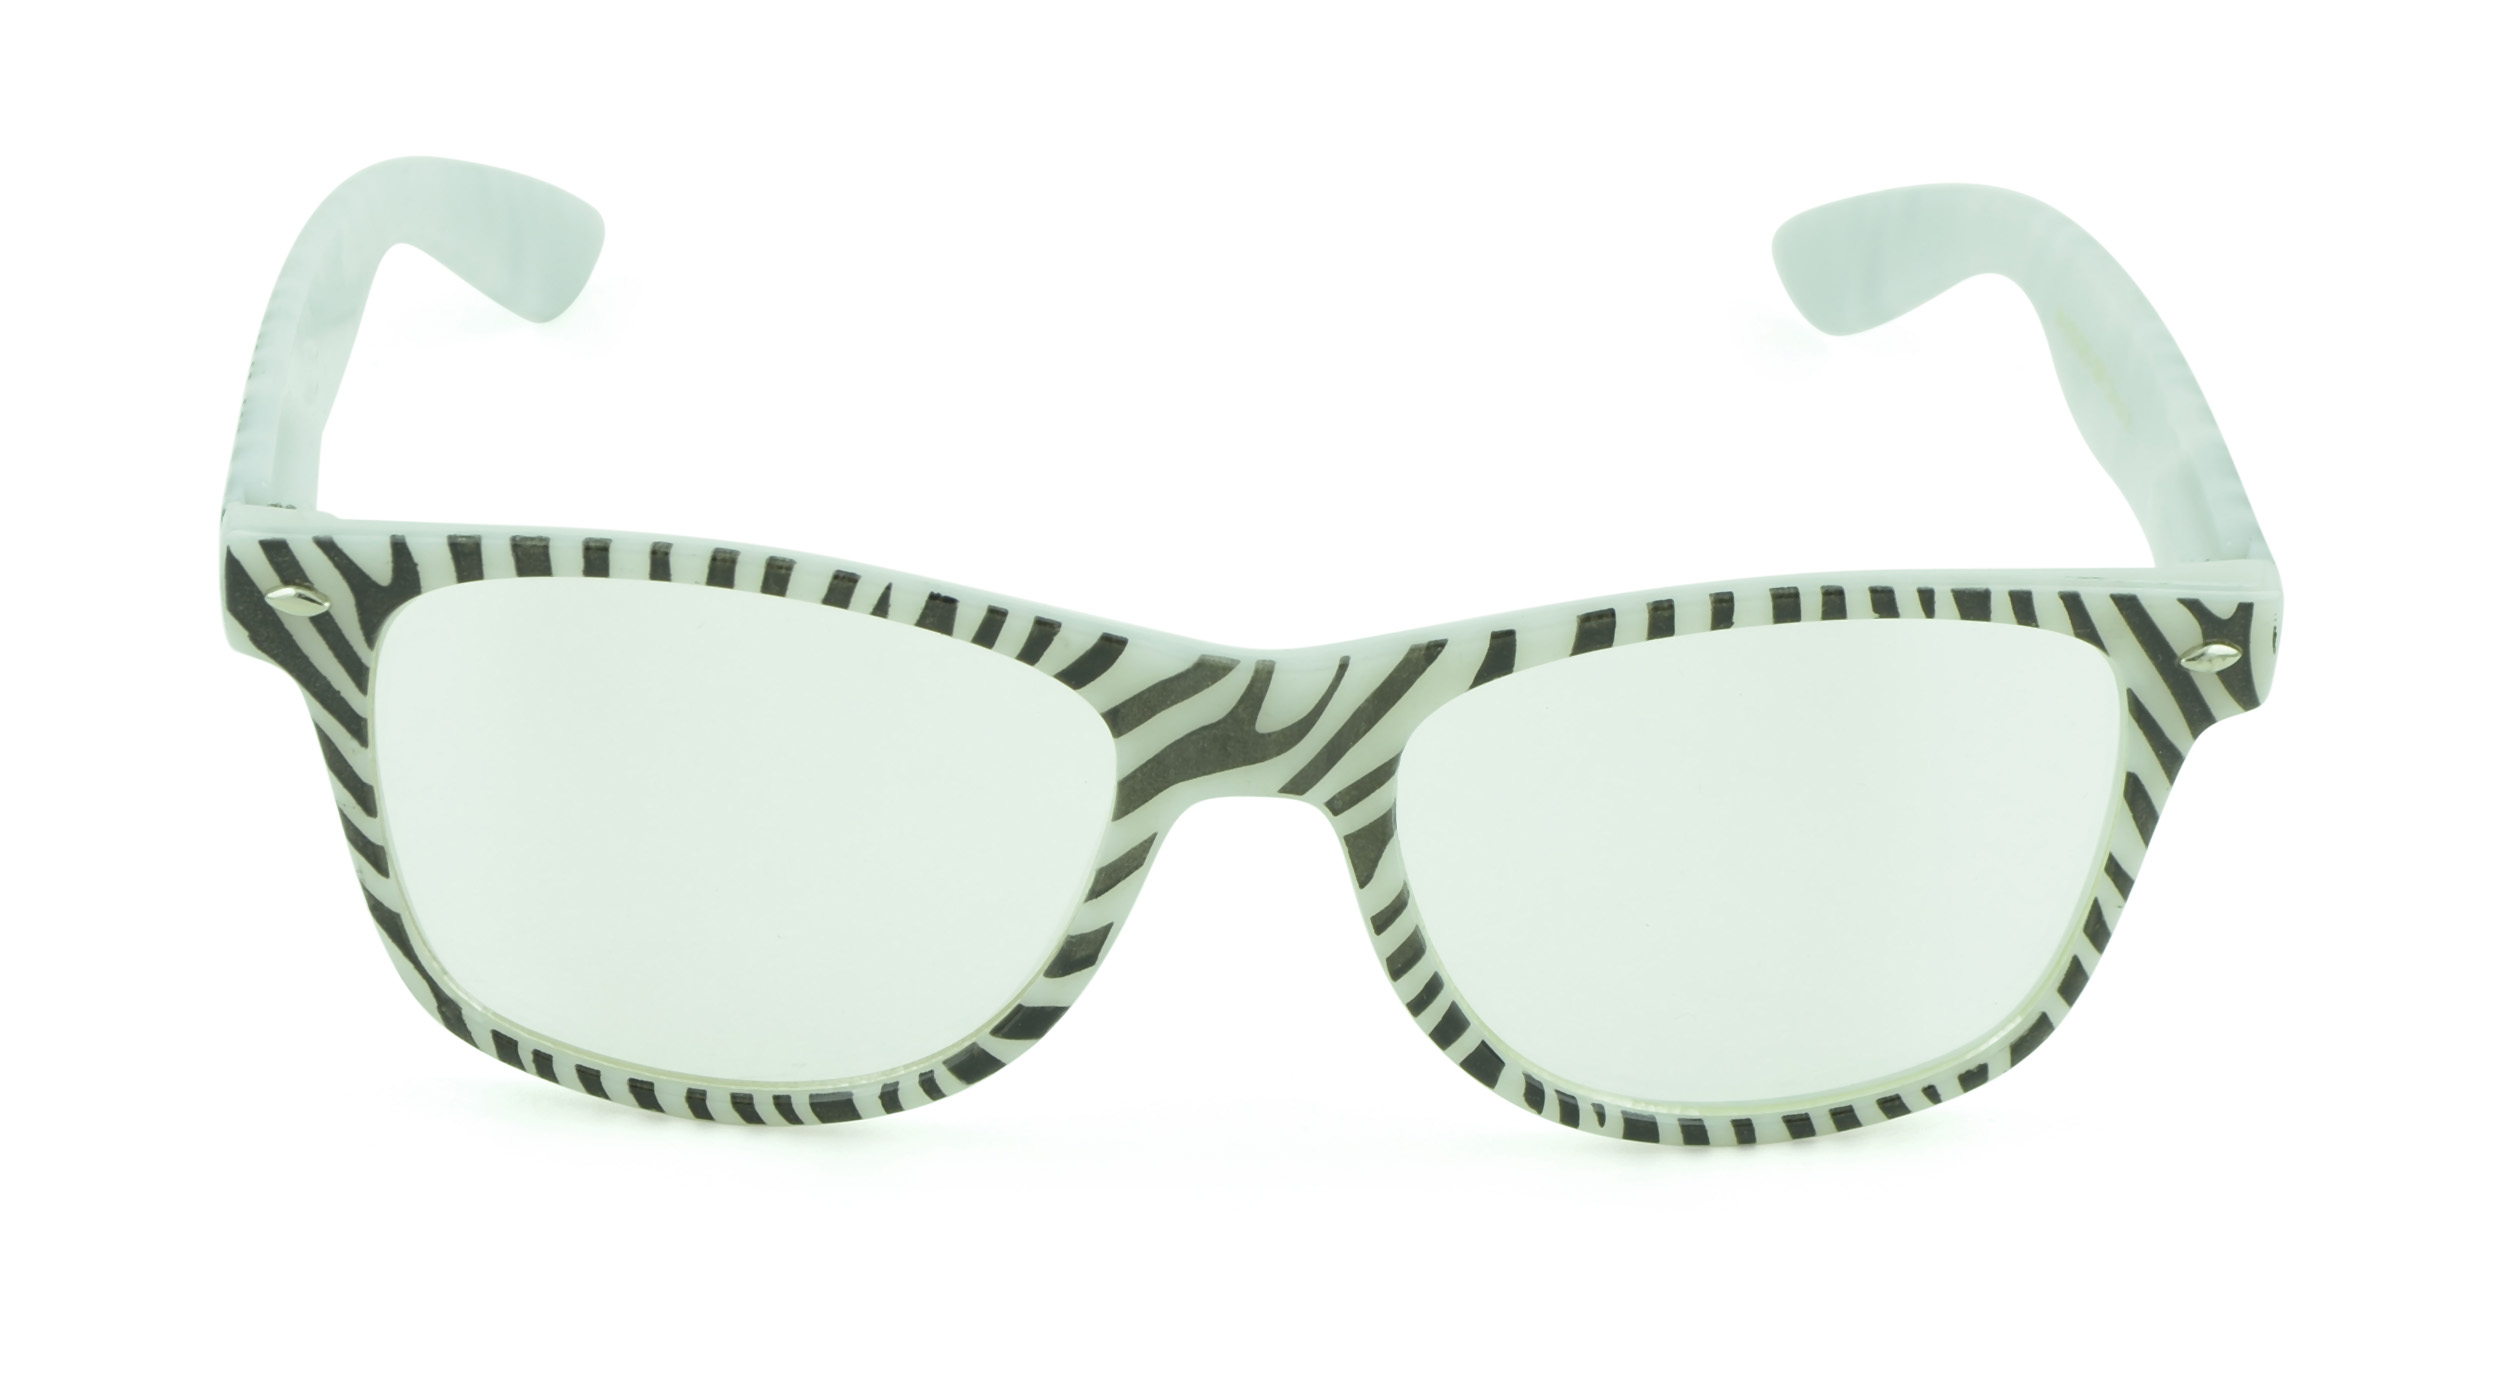 Belle Donne - Unisex Cool Rave Style Glow in the Dark Sunglasses - White Zebra